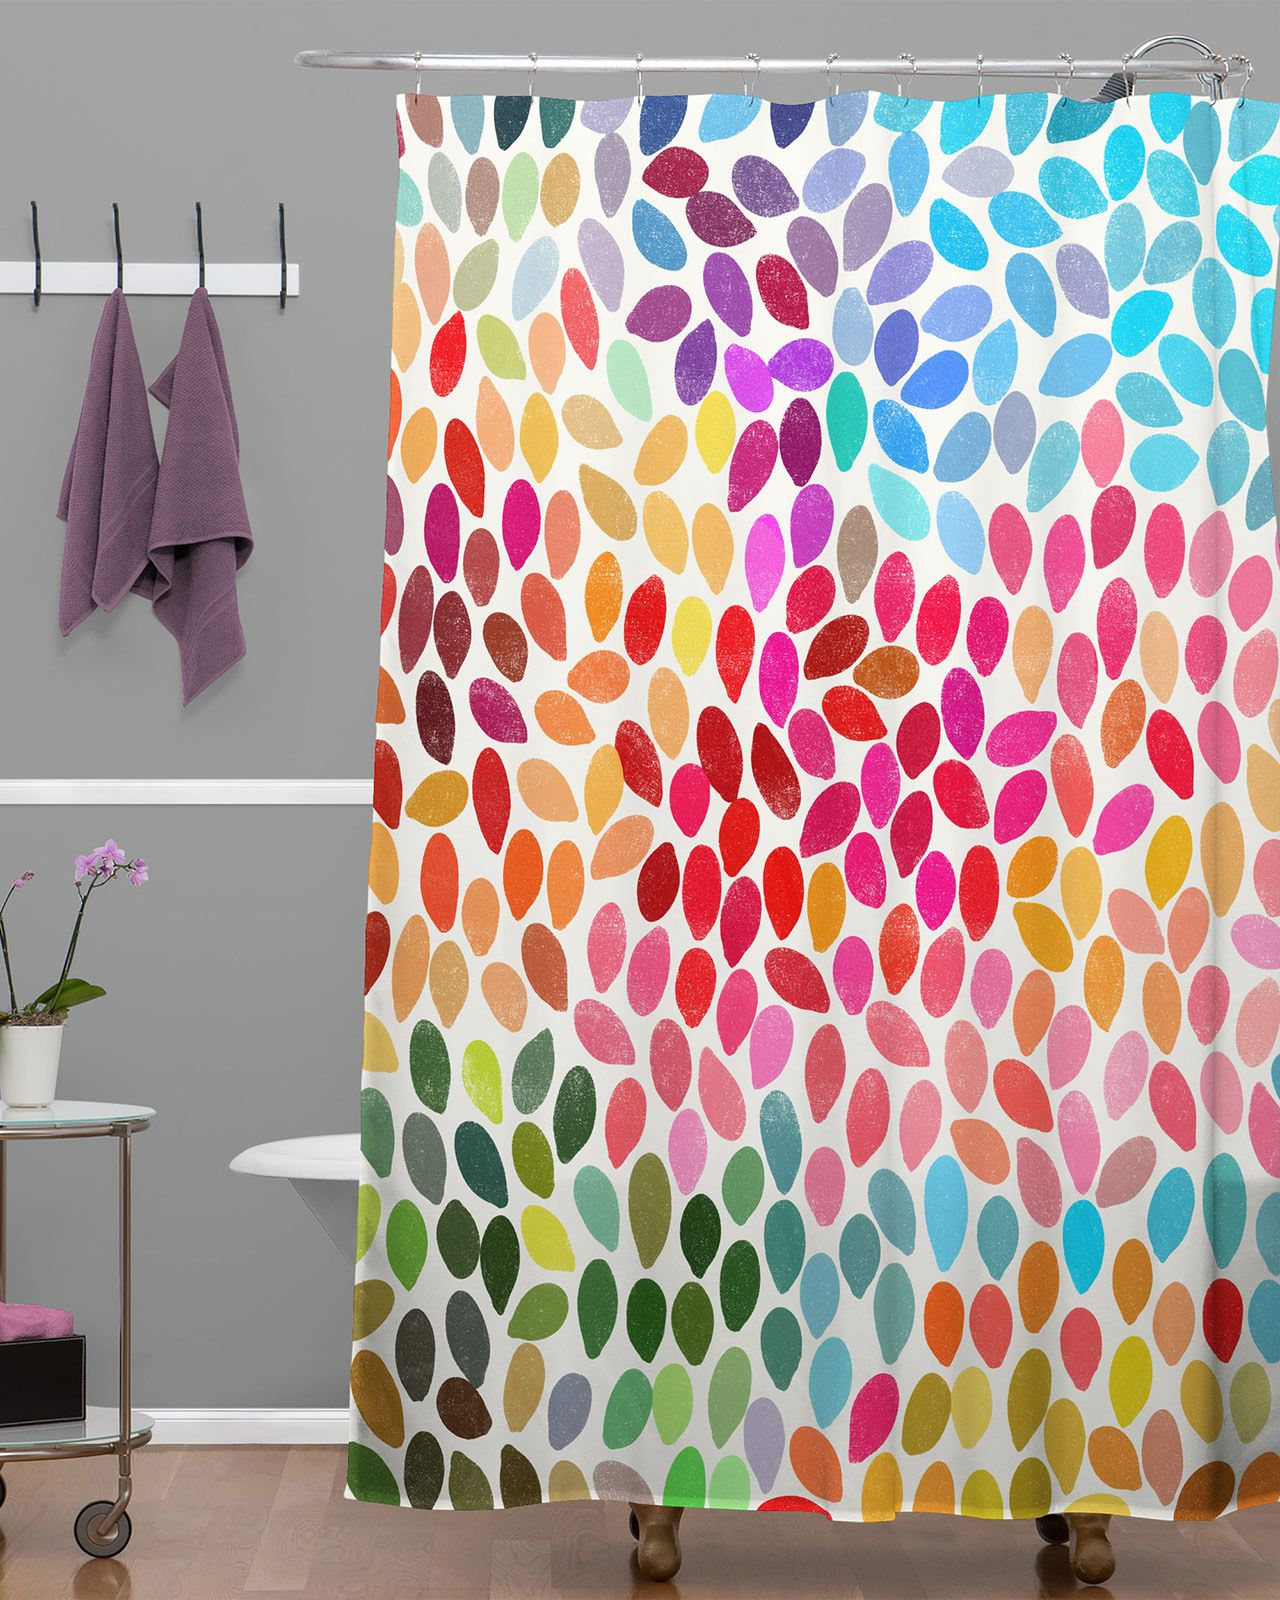 primary colors kids shower curtain - Google Search | Camper ...